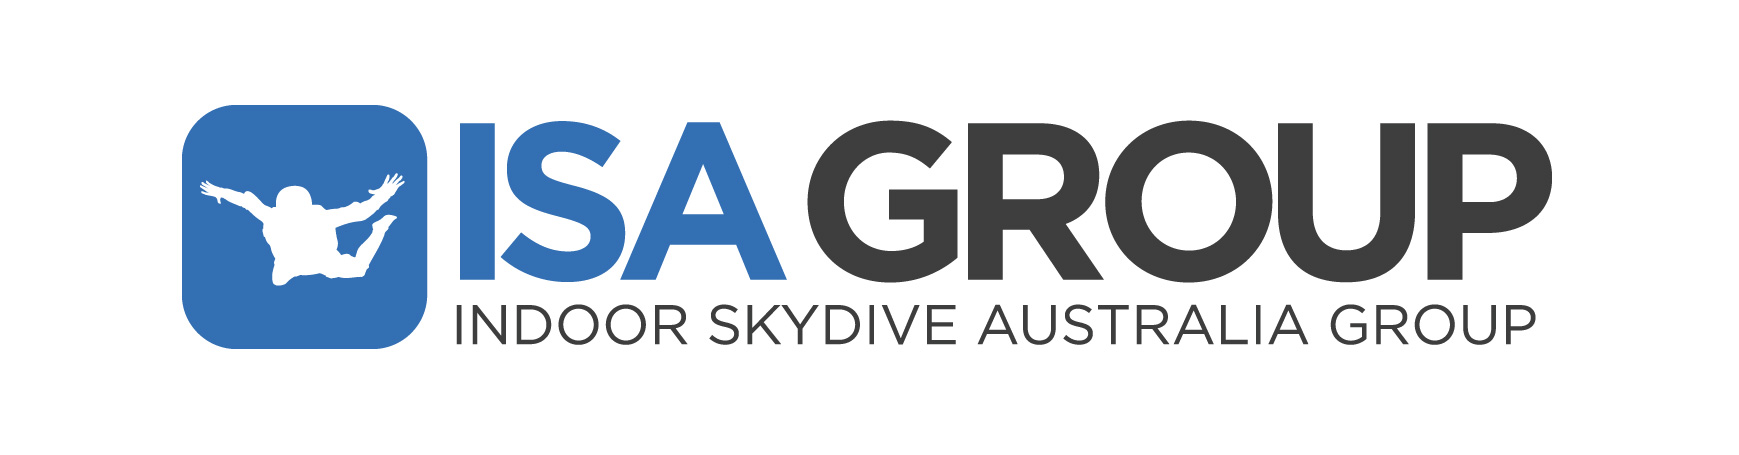 Indoor Skydive Australia Group Limited (ASX:IDZ)